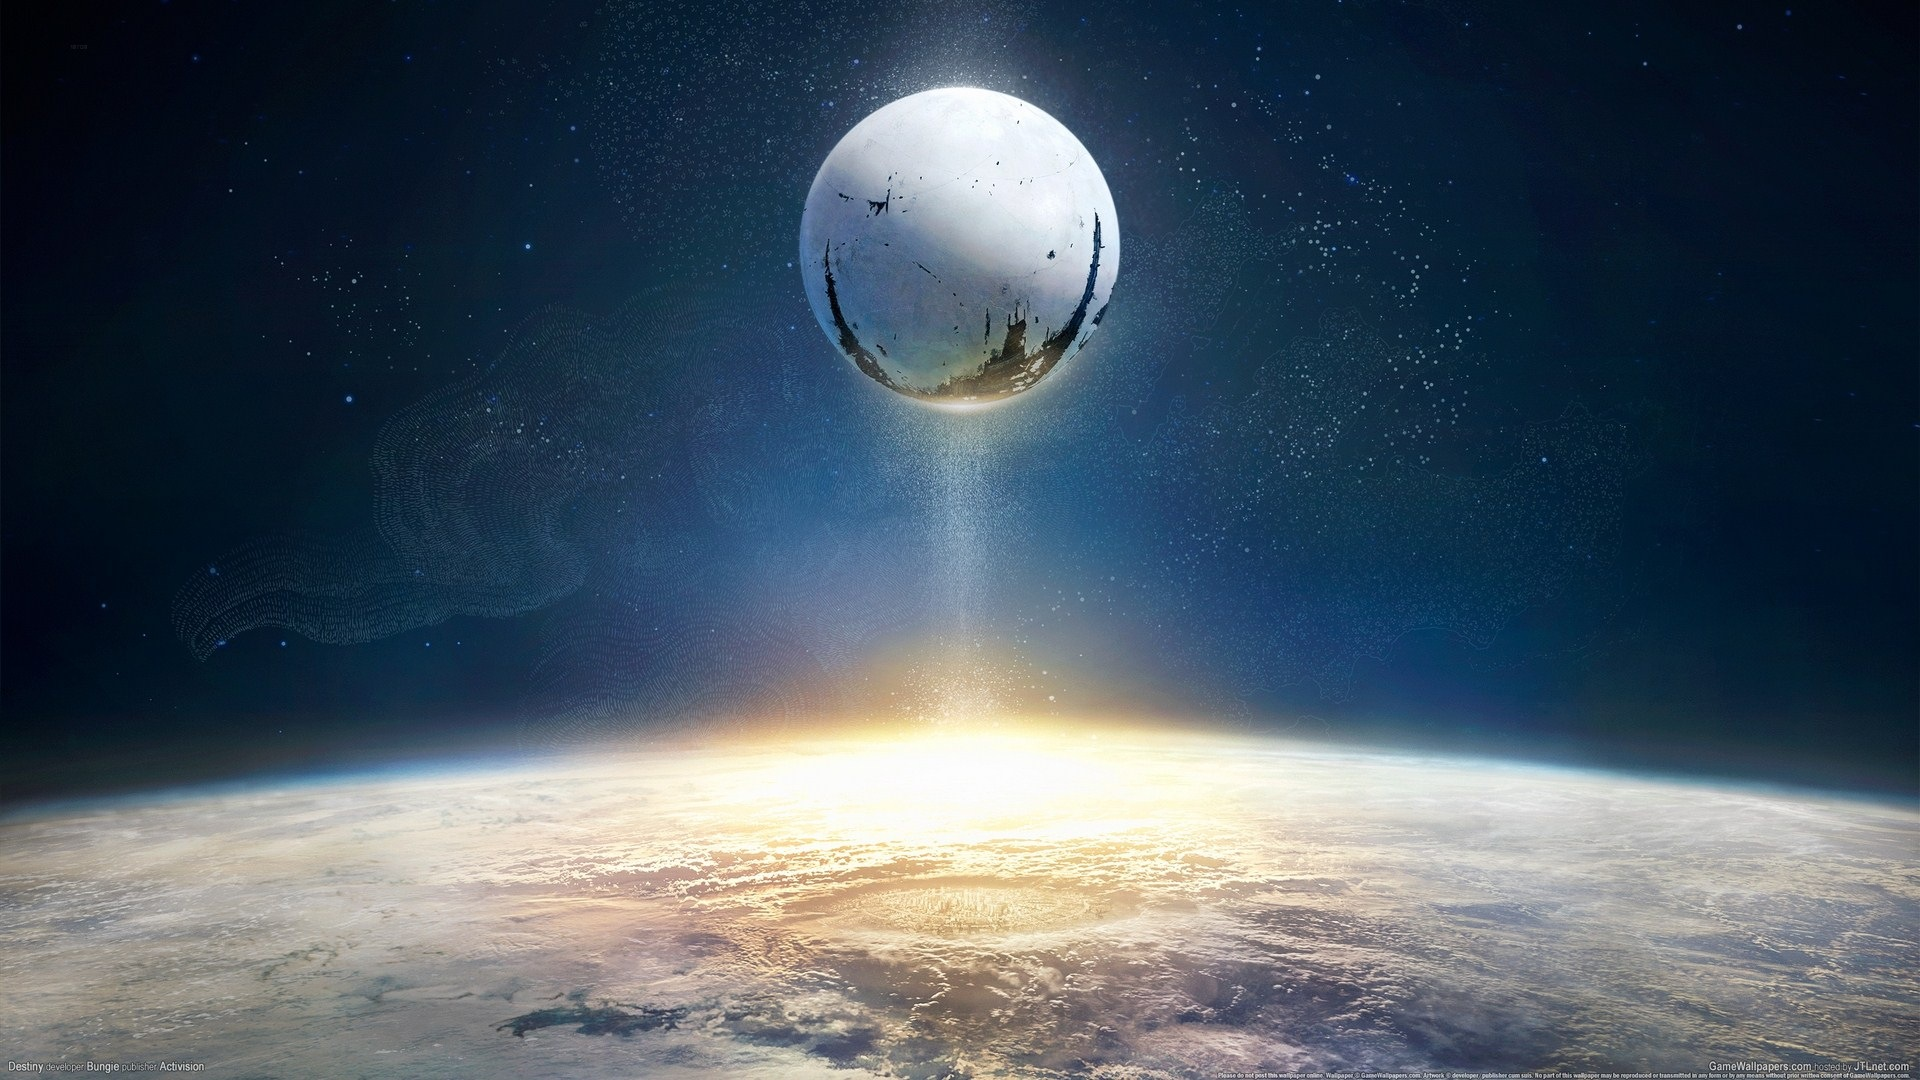 Destinywallpaper